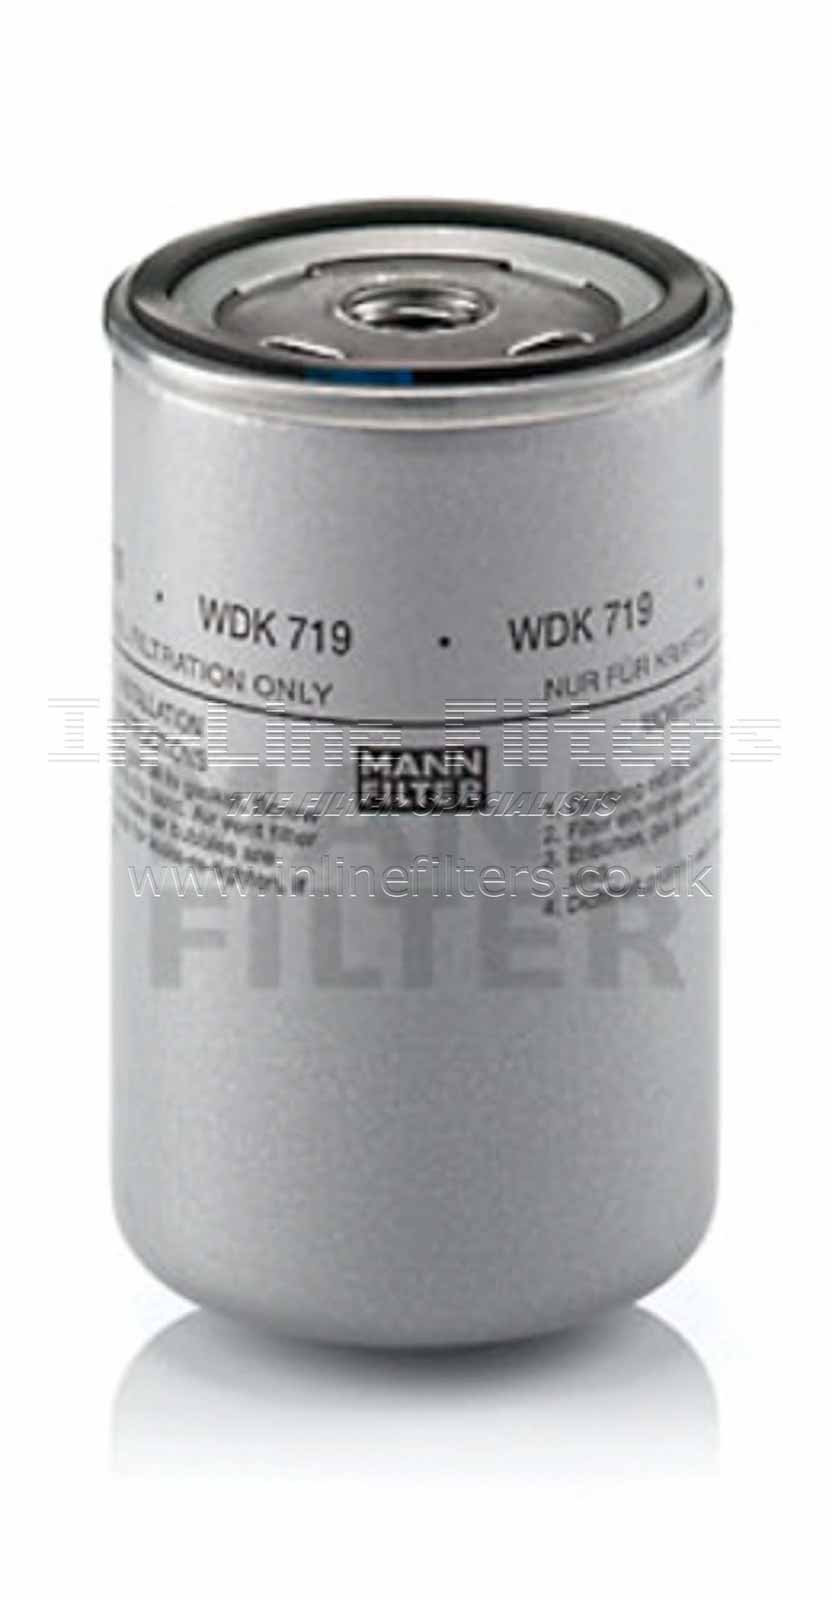 FMH-WDK719 FILTER-Fuel(Brand Specific-Mann WDK719) - Click Image to Close